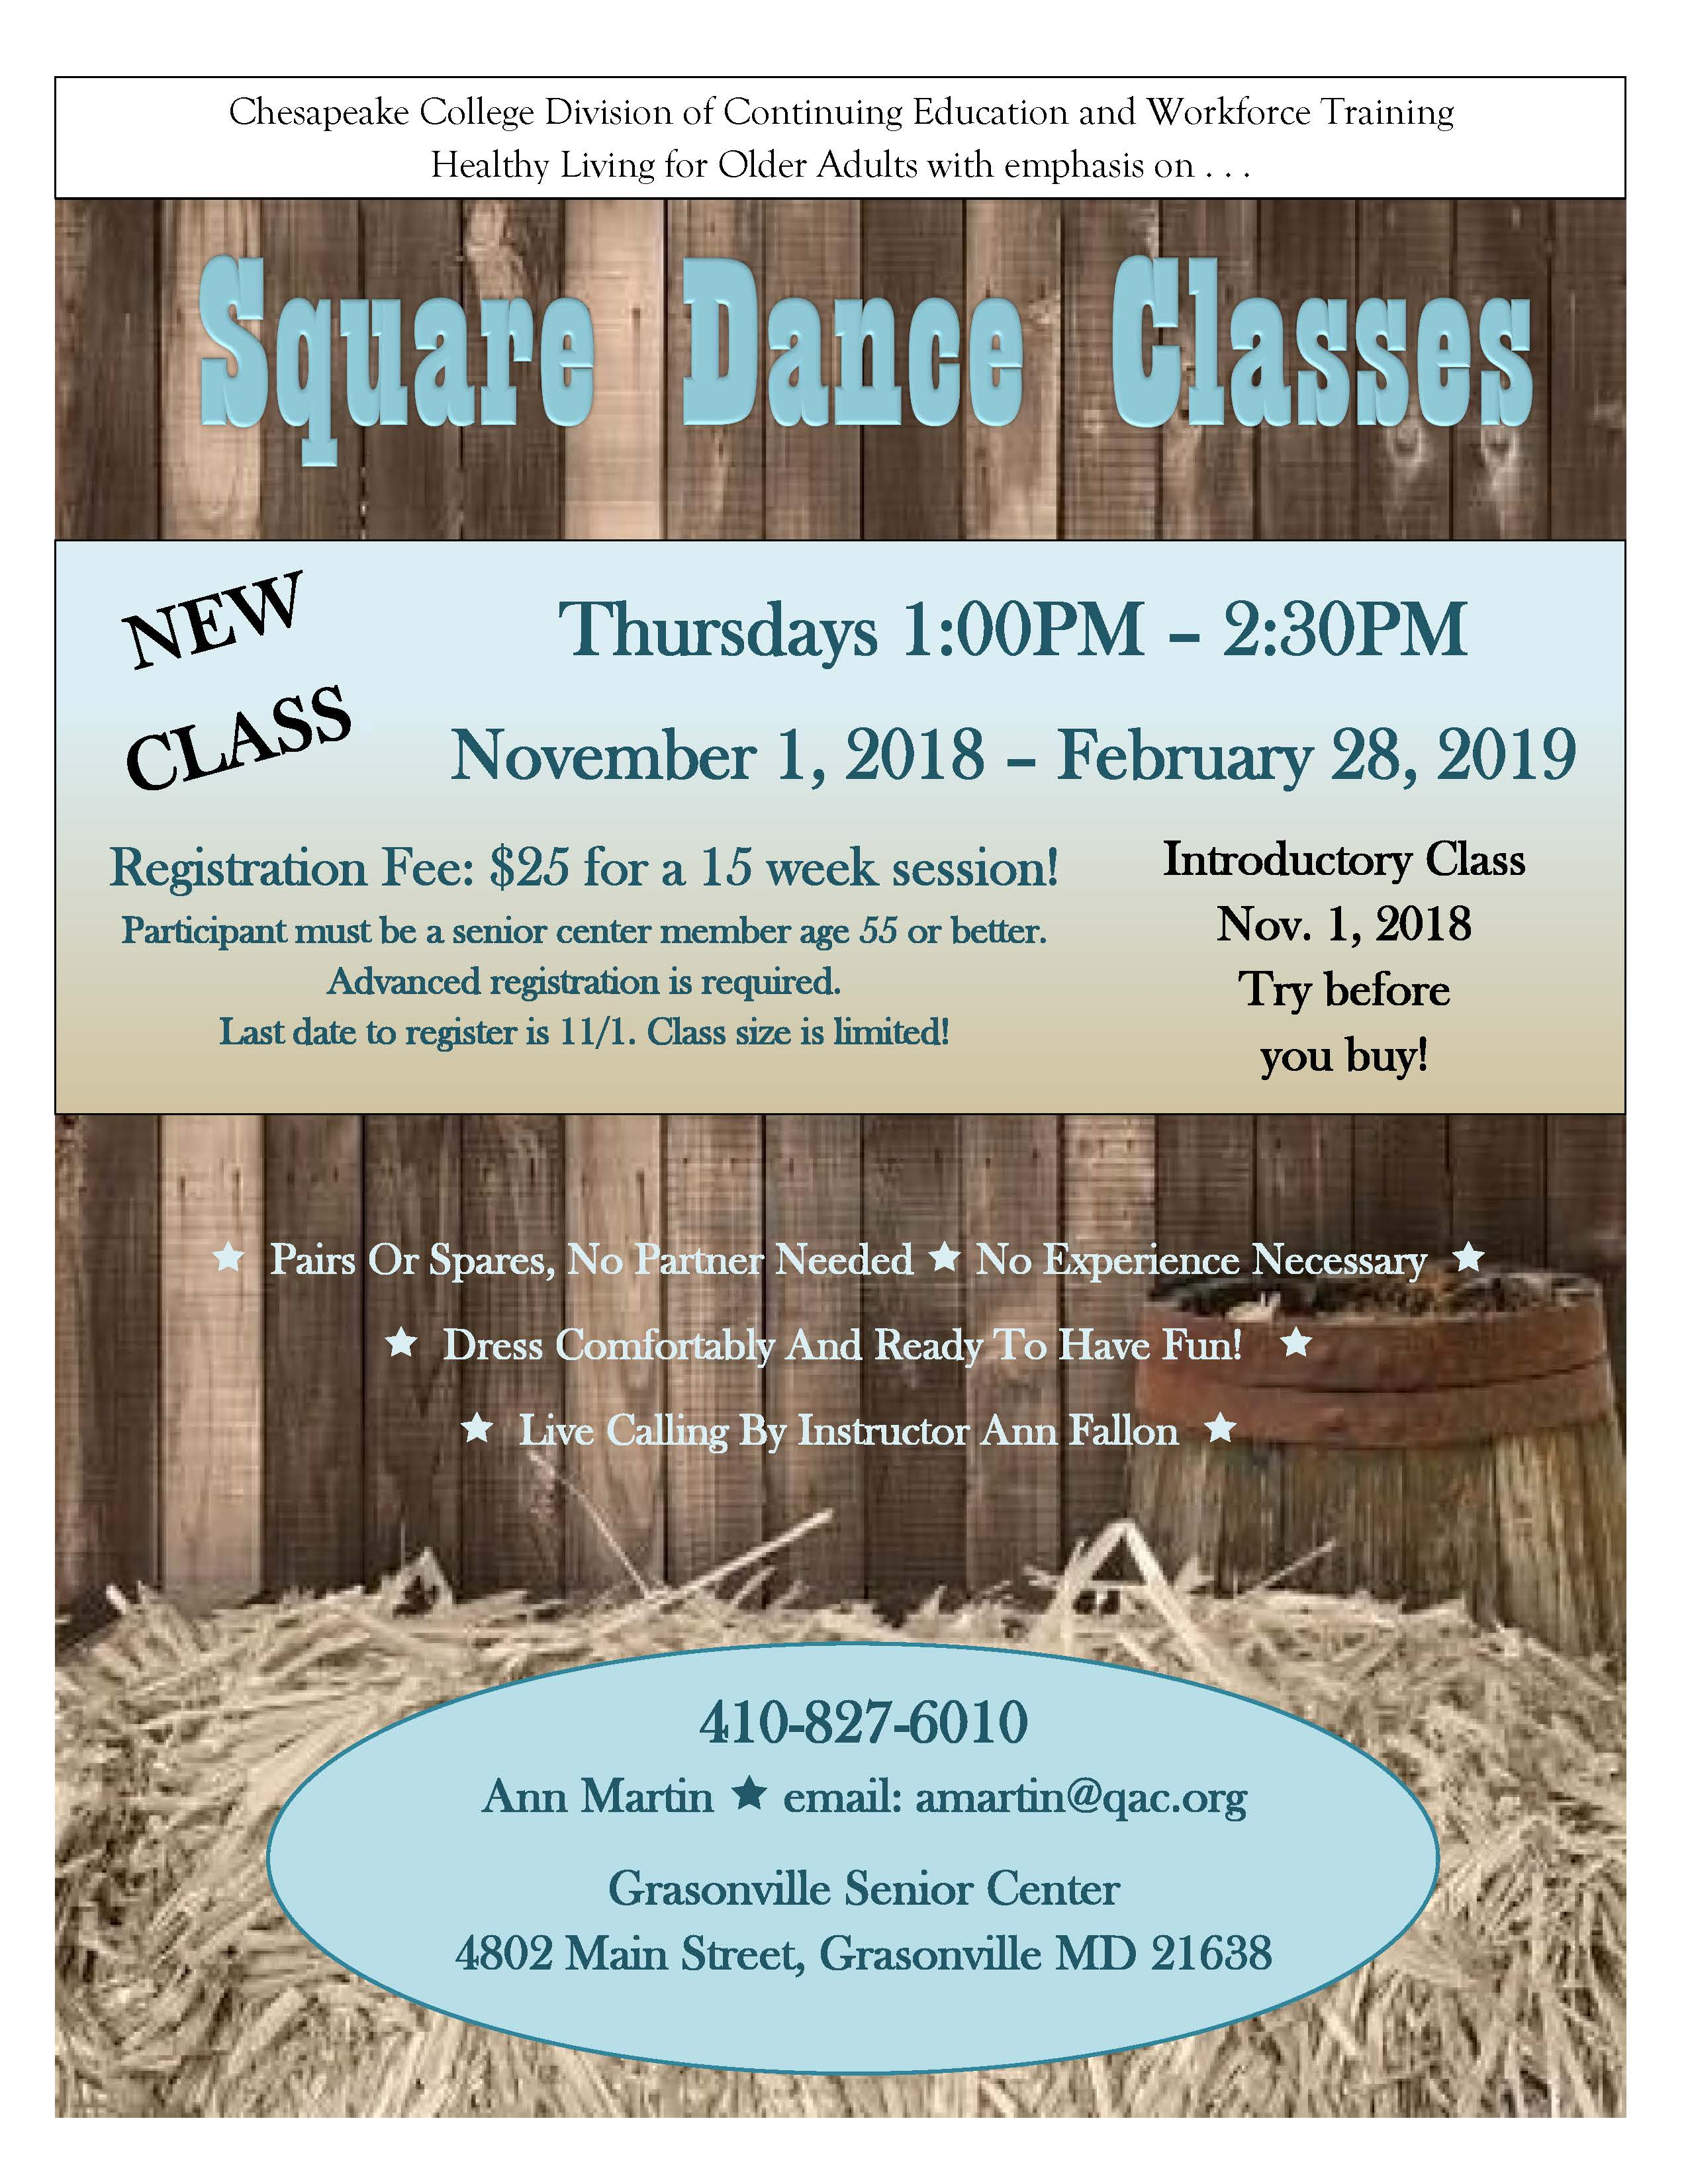 2018 SQUARE DANCE CLASS Flyer introductory